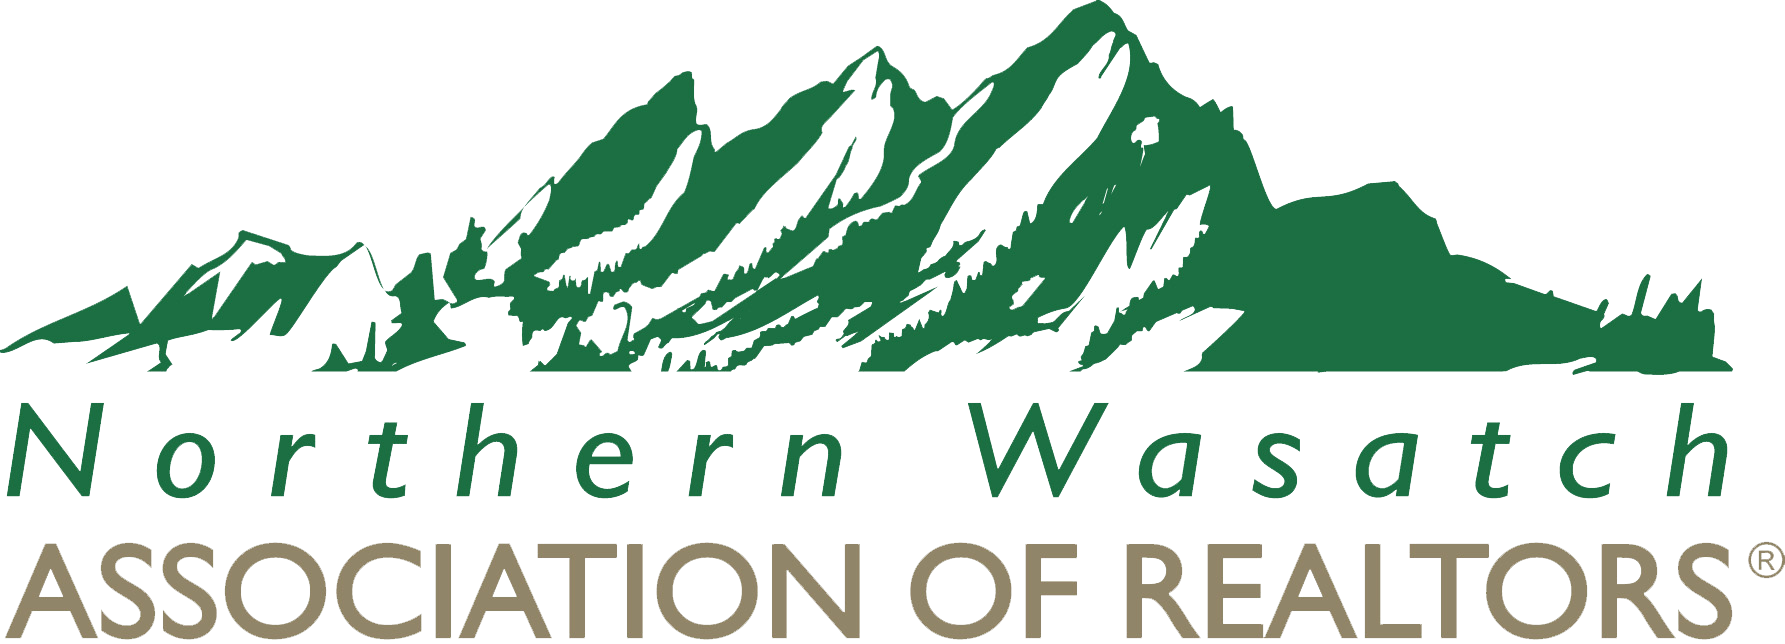 Northern Wasatch Association of Realtors